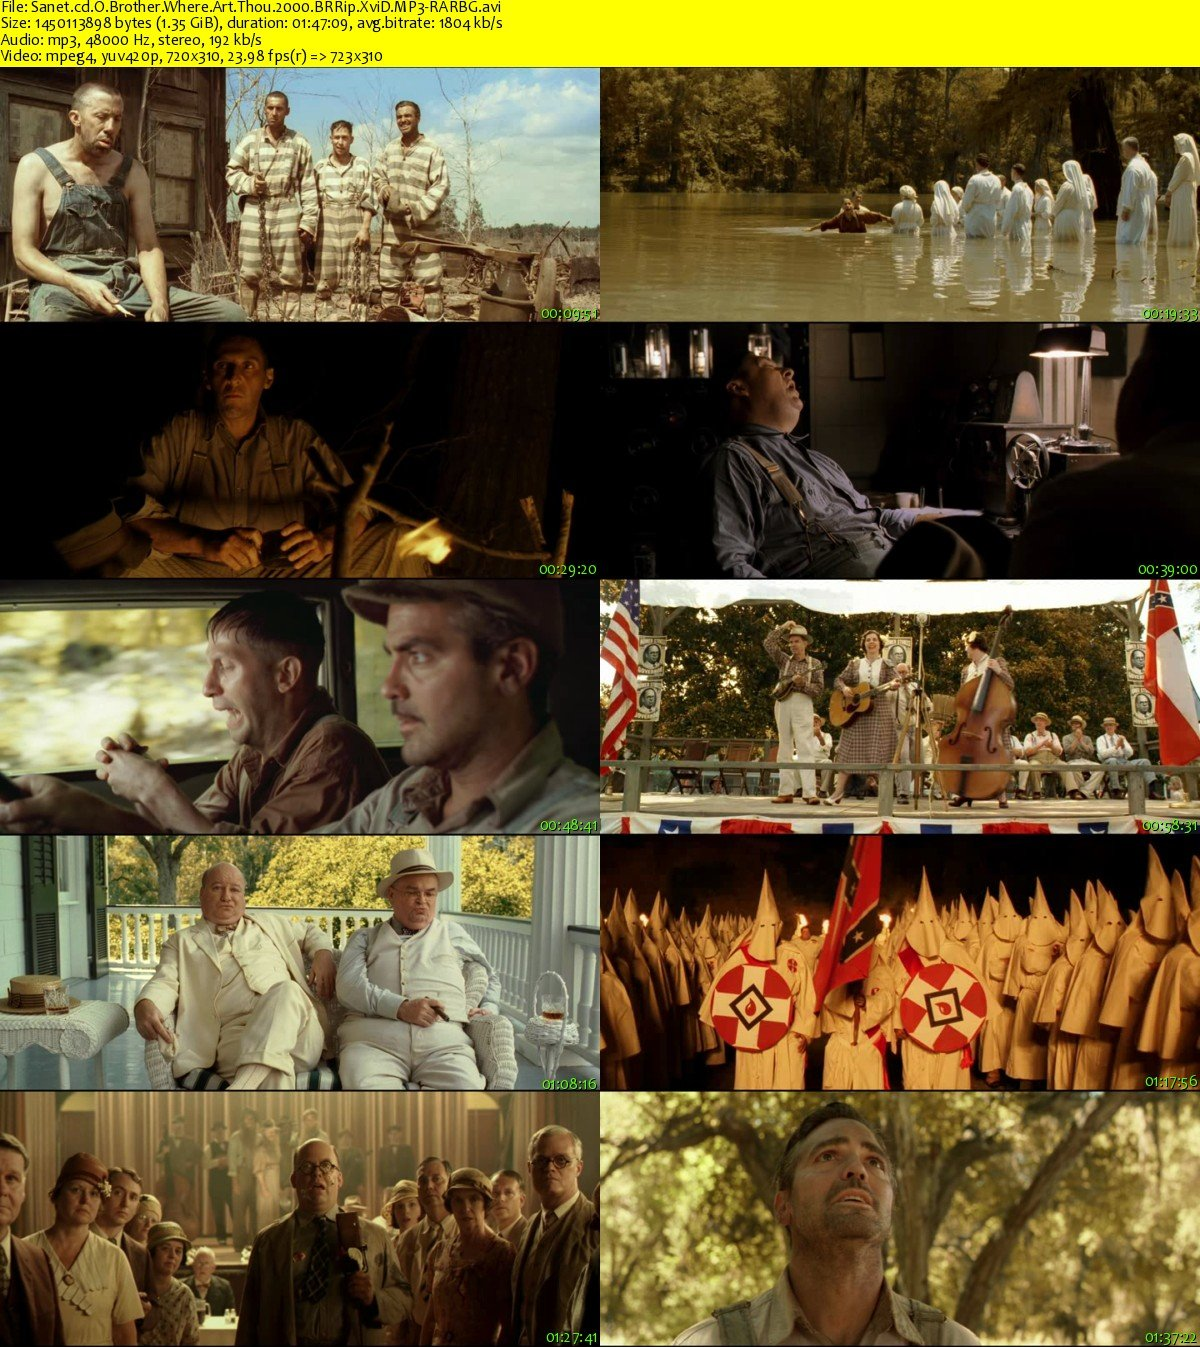 comparing o brother where art thou to the odyssey O brother where art thou/ the odyssey comparative review february 13, 2013 the film o brother where art thou directed by joel coen was a beautiful rendition of several adventures odysseus experienced in the odyssey written by homer.